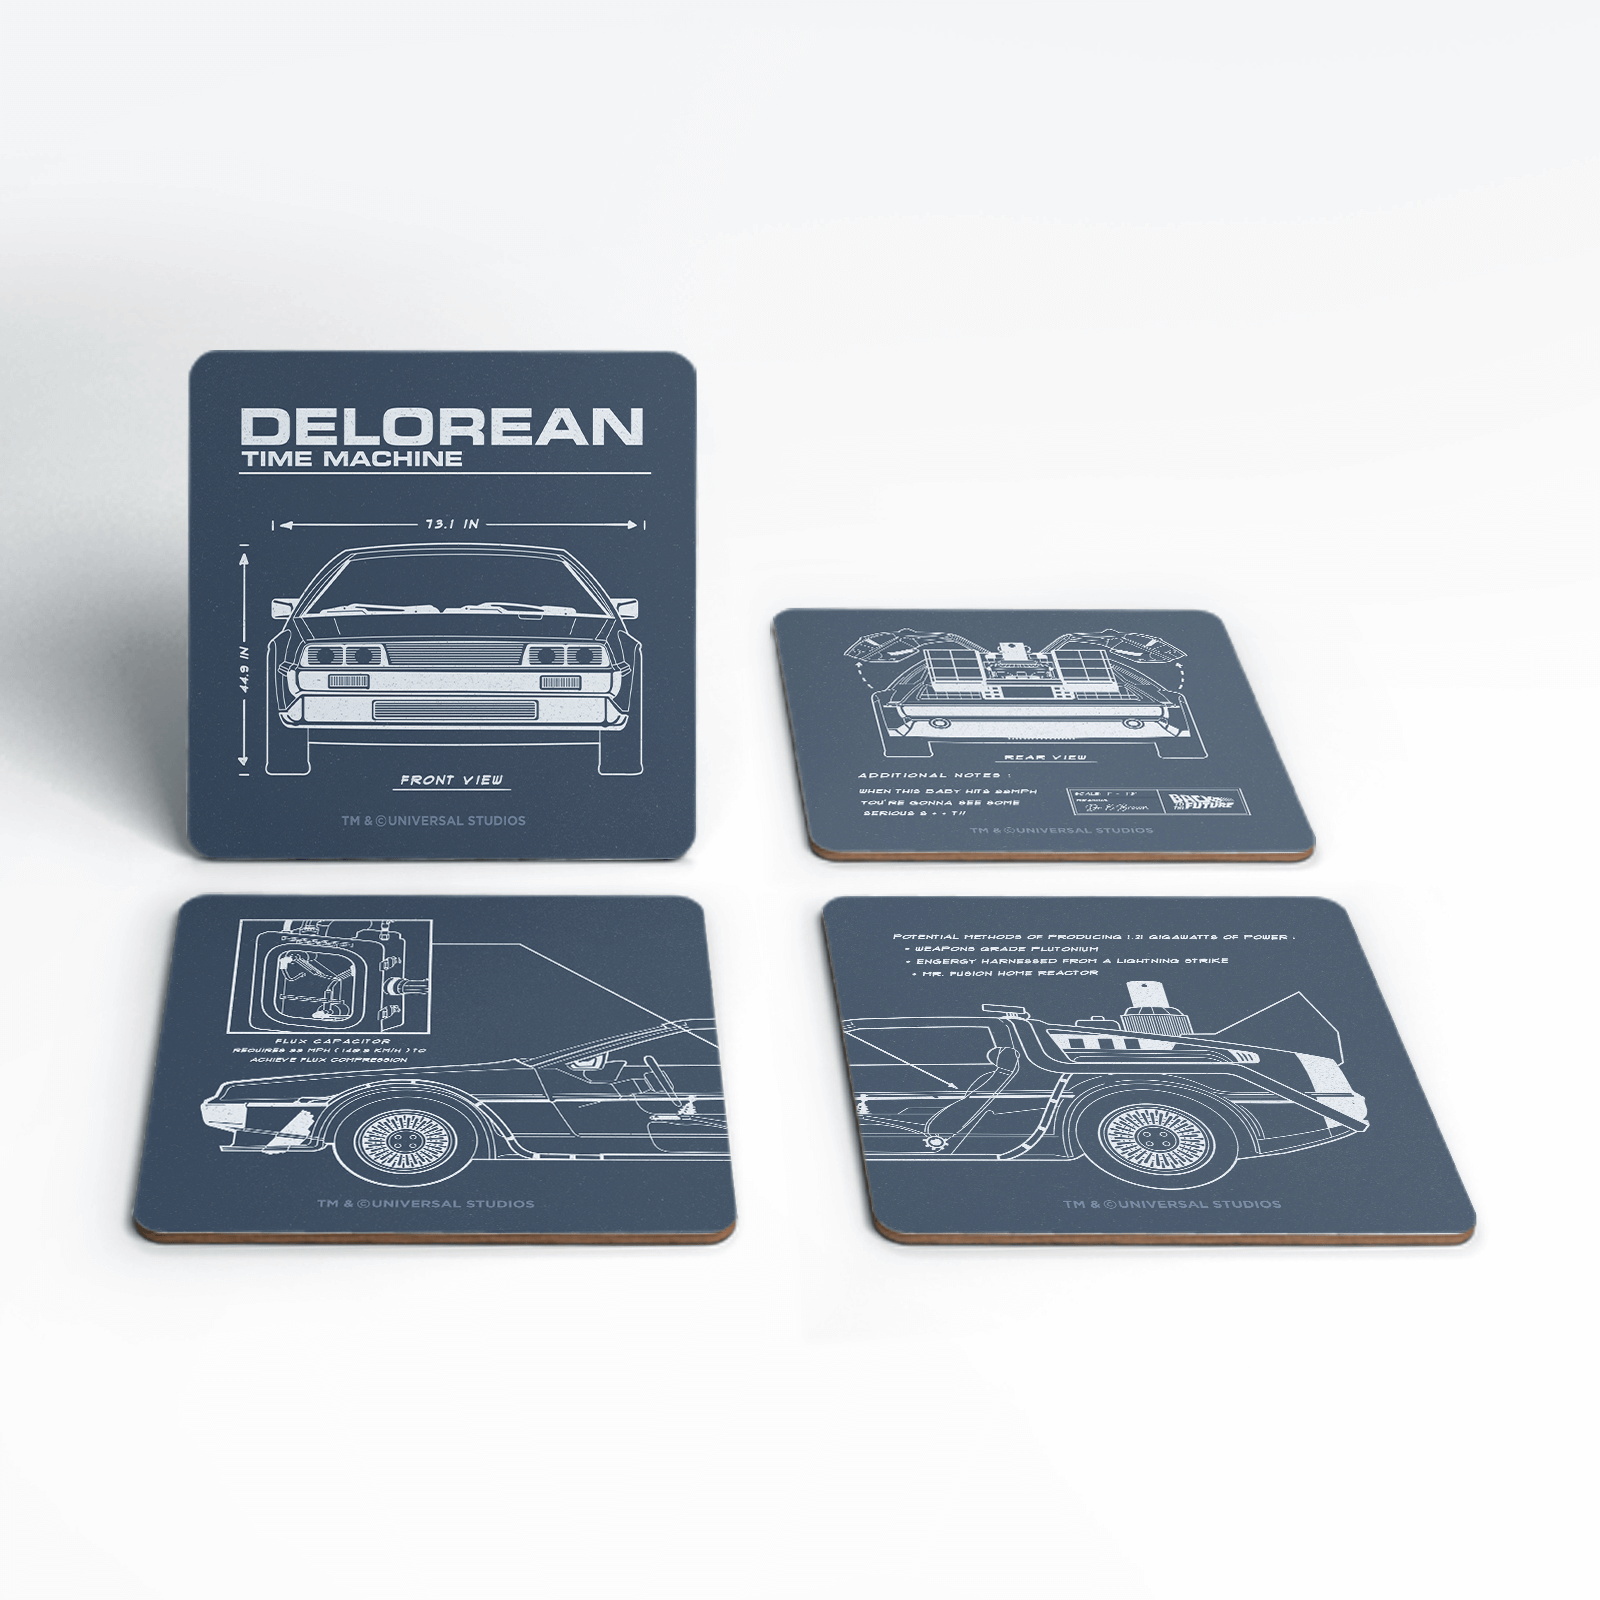 Back To The Future Delorean Schematic Coaster Set